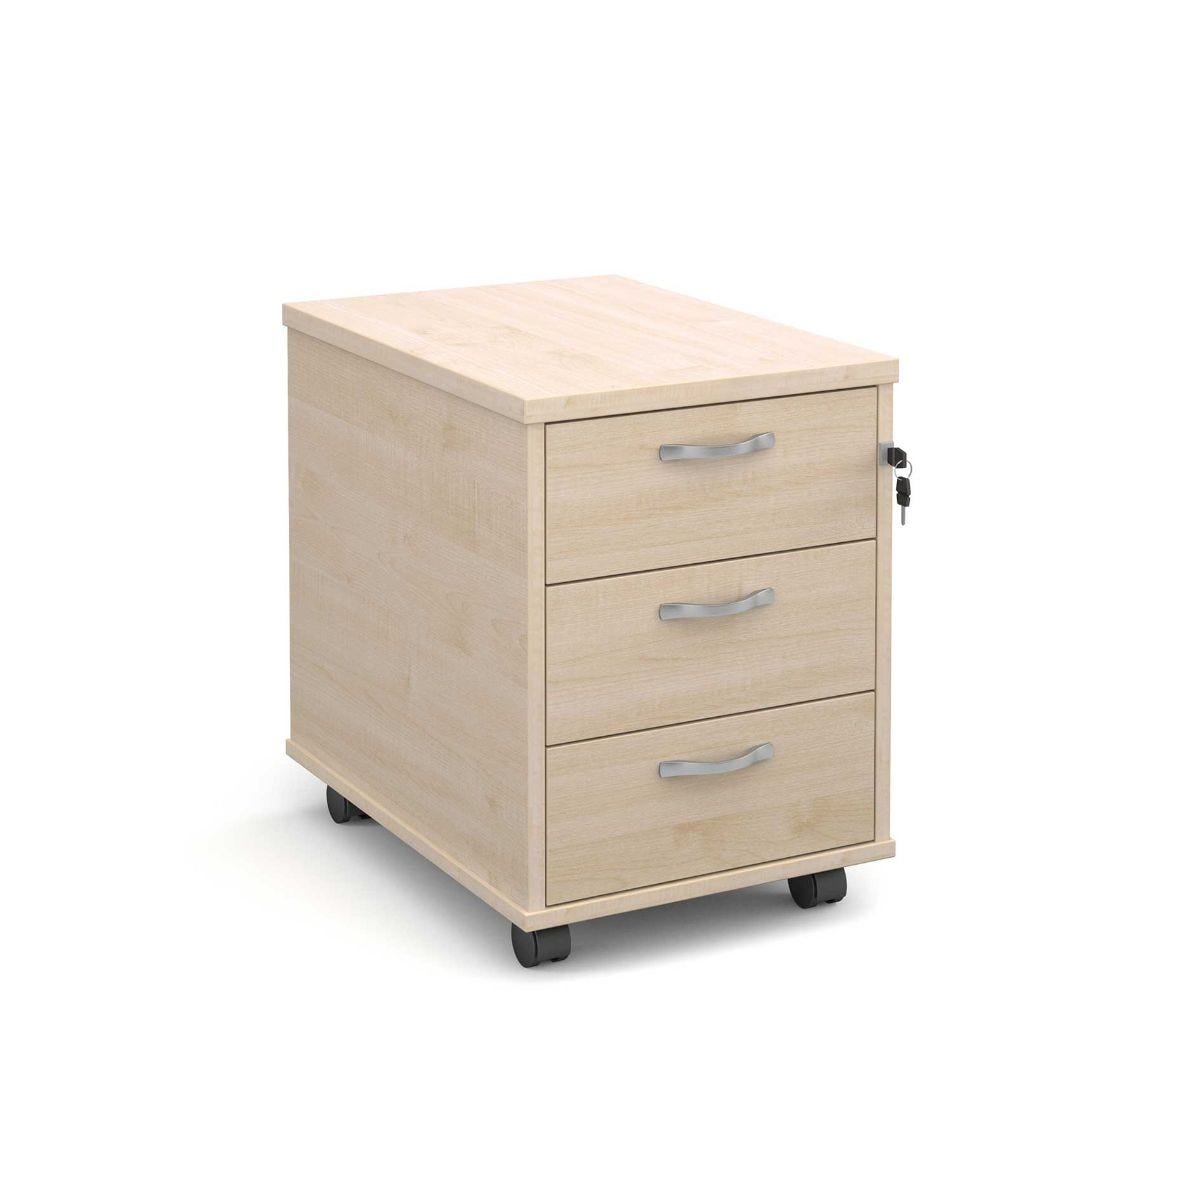 Mobile Pedestal with 3 Drawers, Maple.